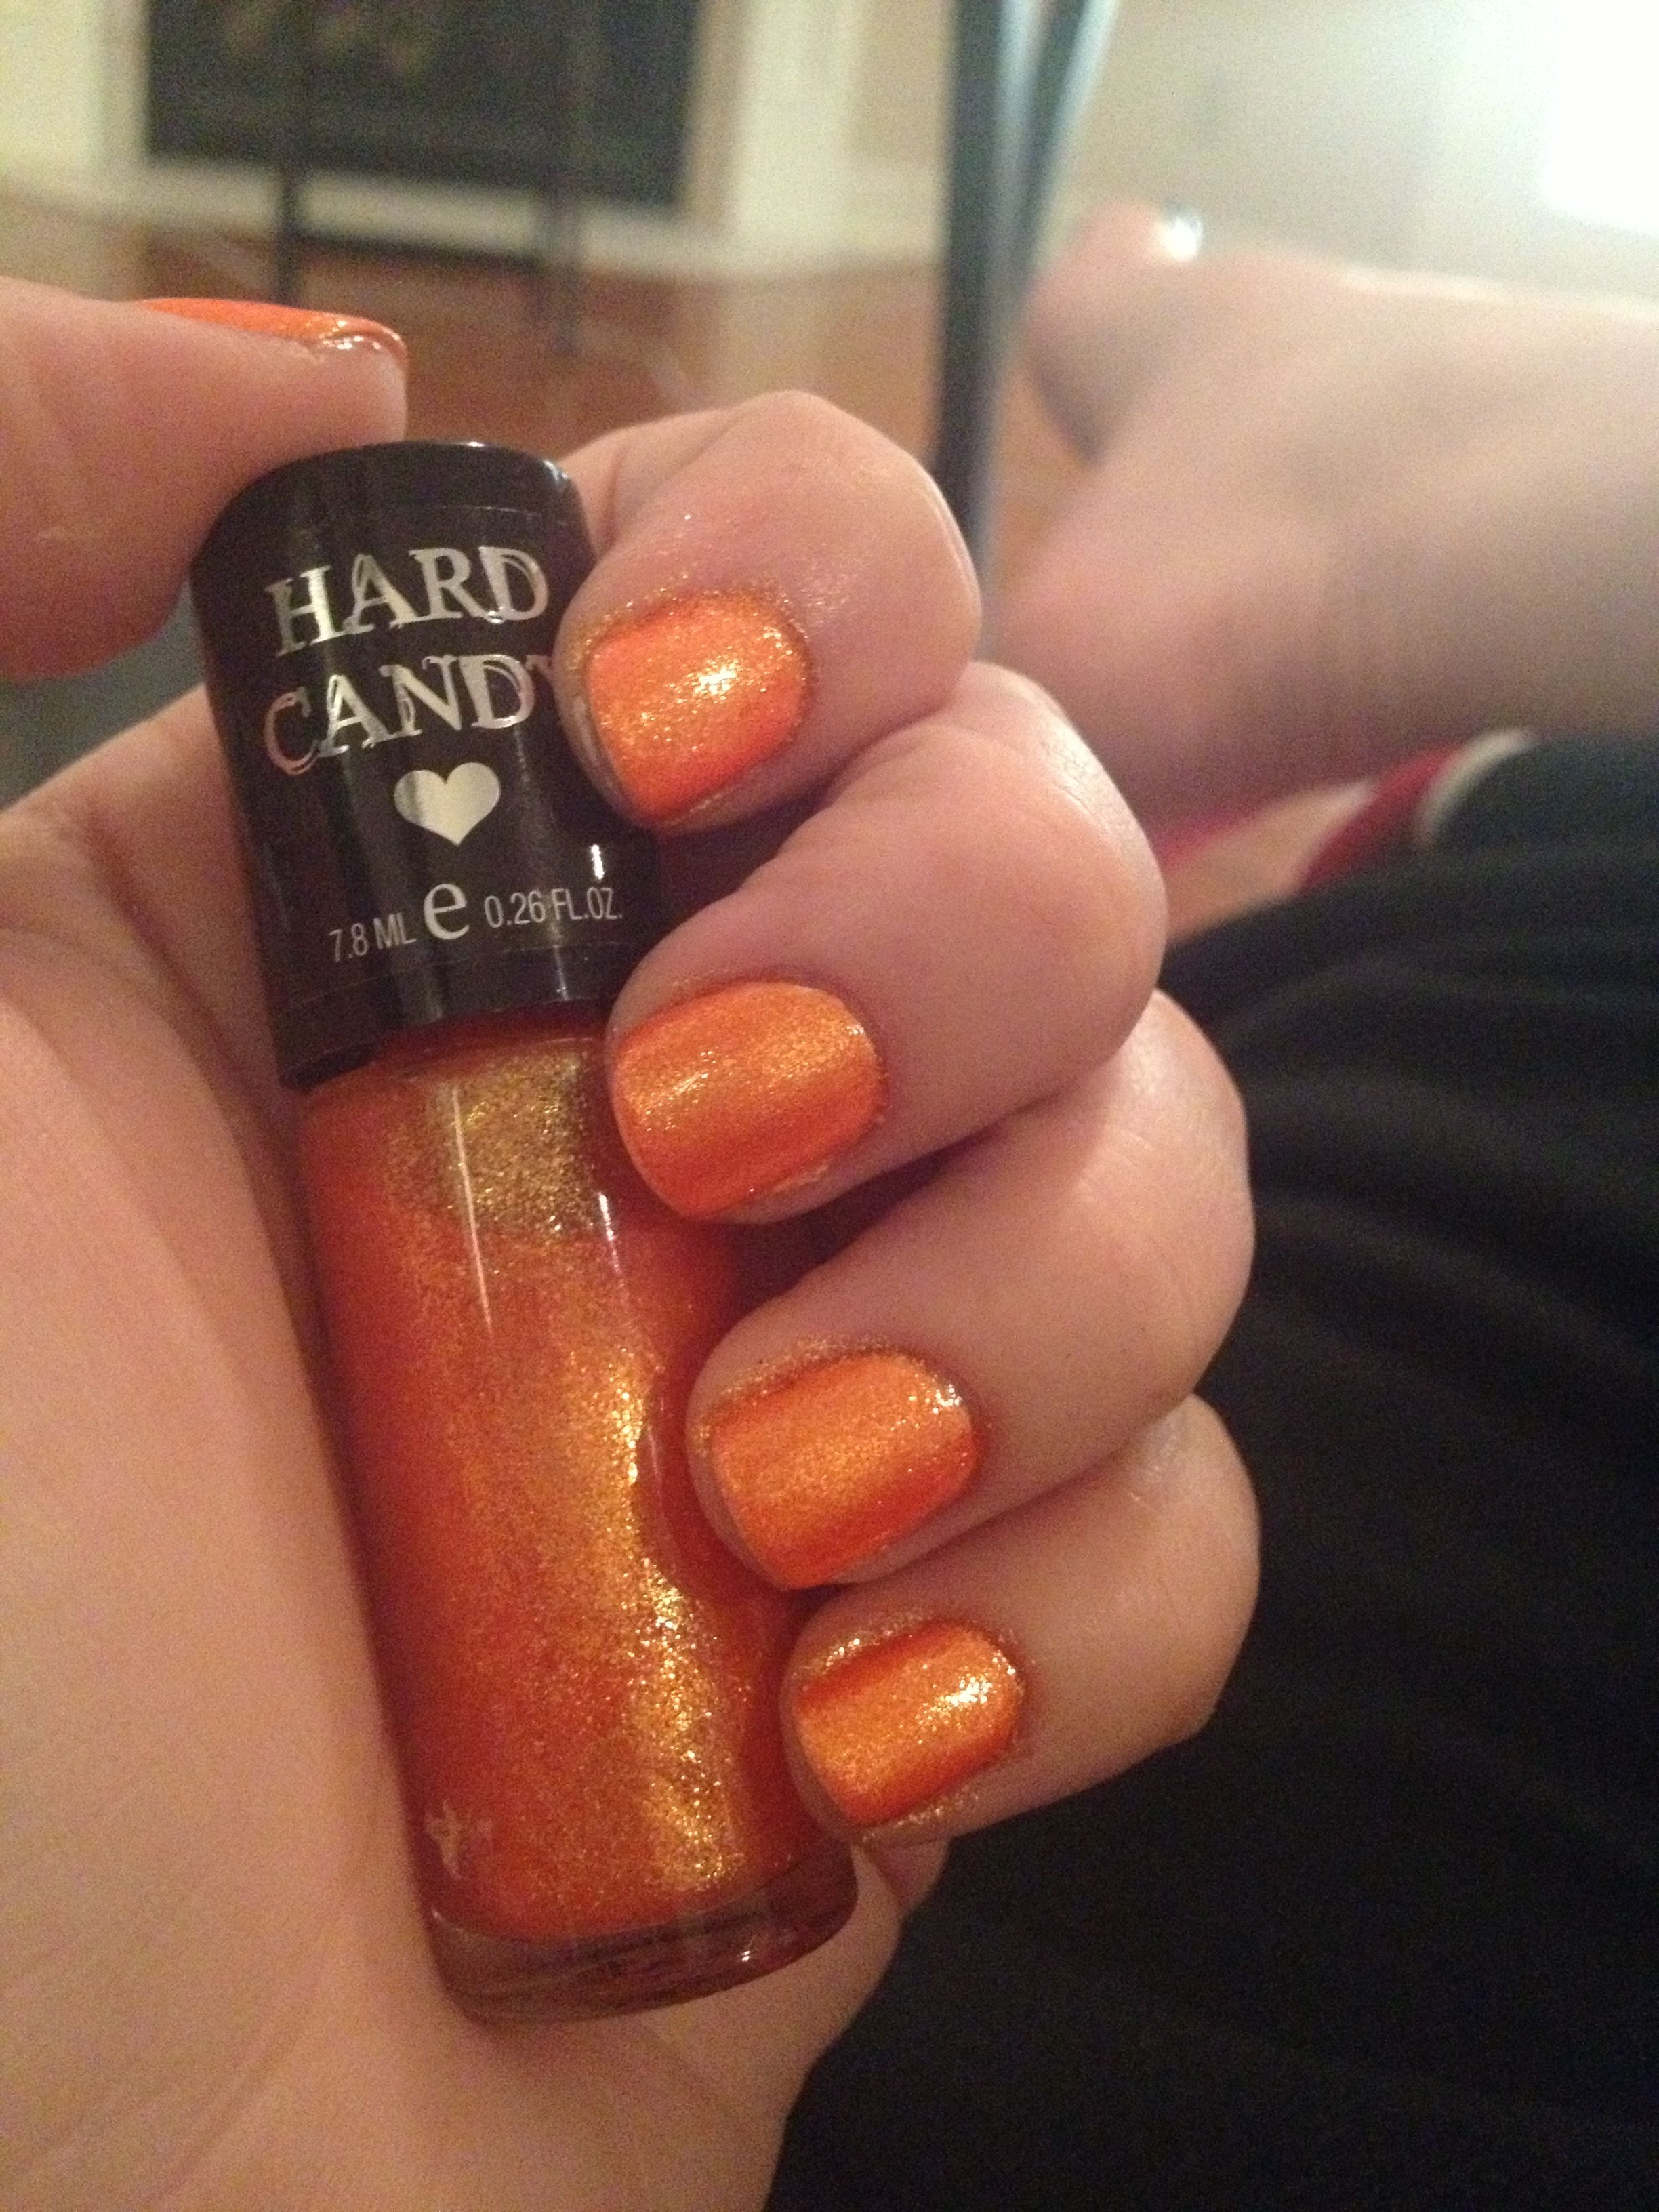 Pinch of Spice by Hard Candy